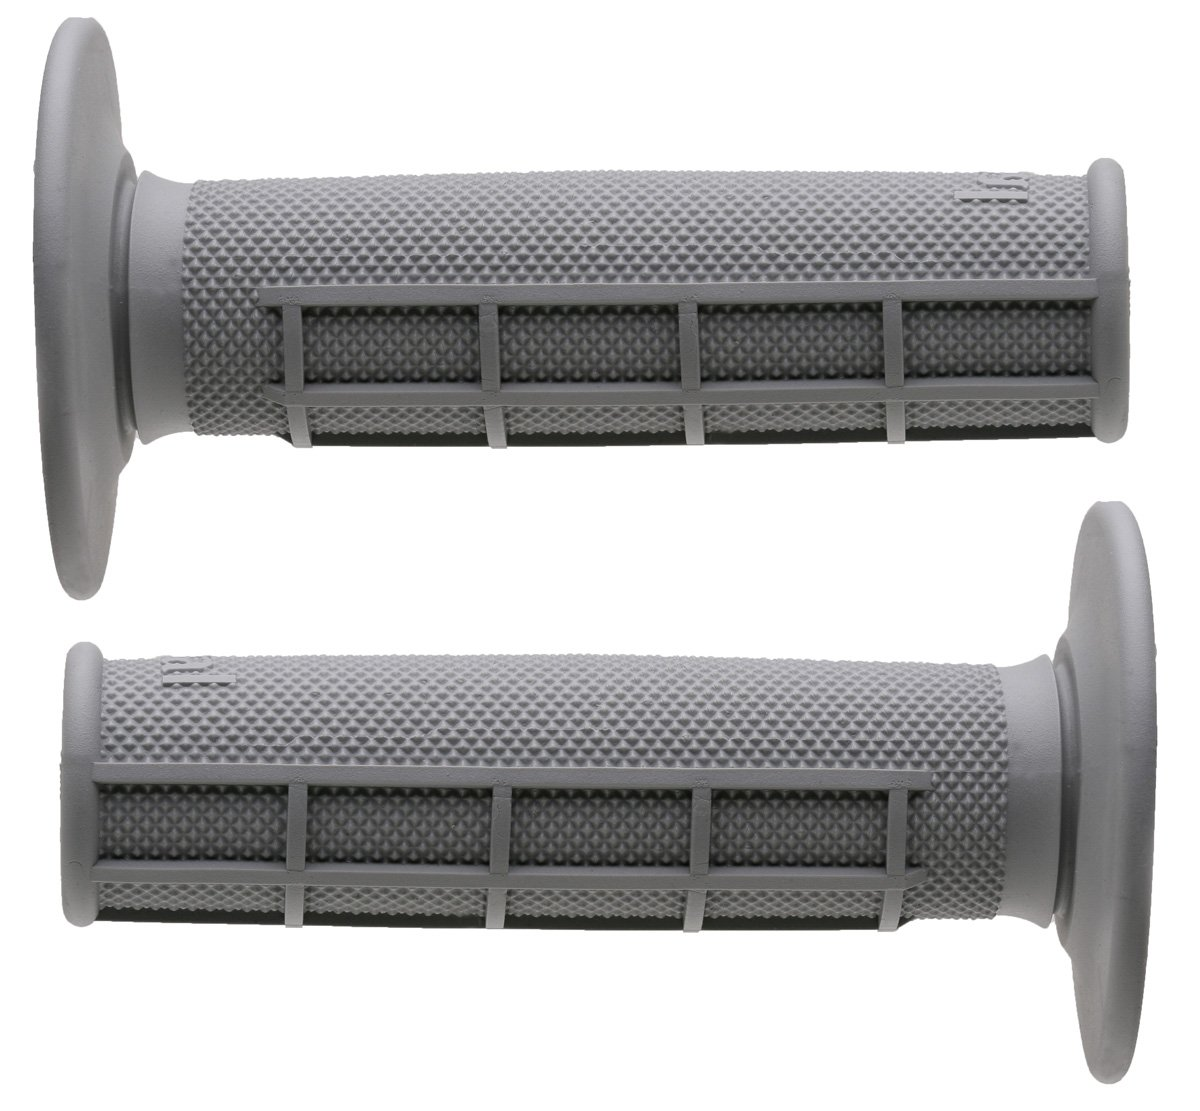 Renthal G087 Gray Diamond/Waffle Medium Compound Motocross Grip